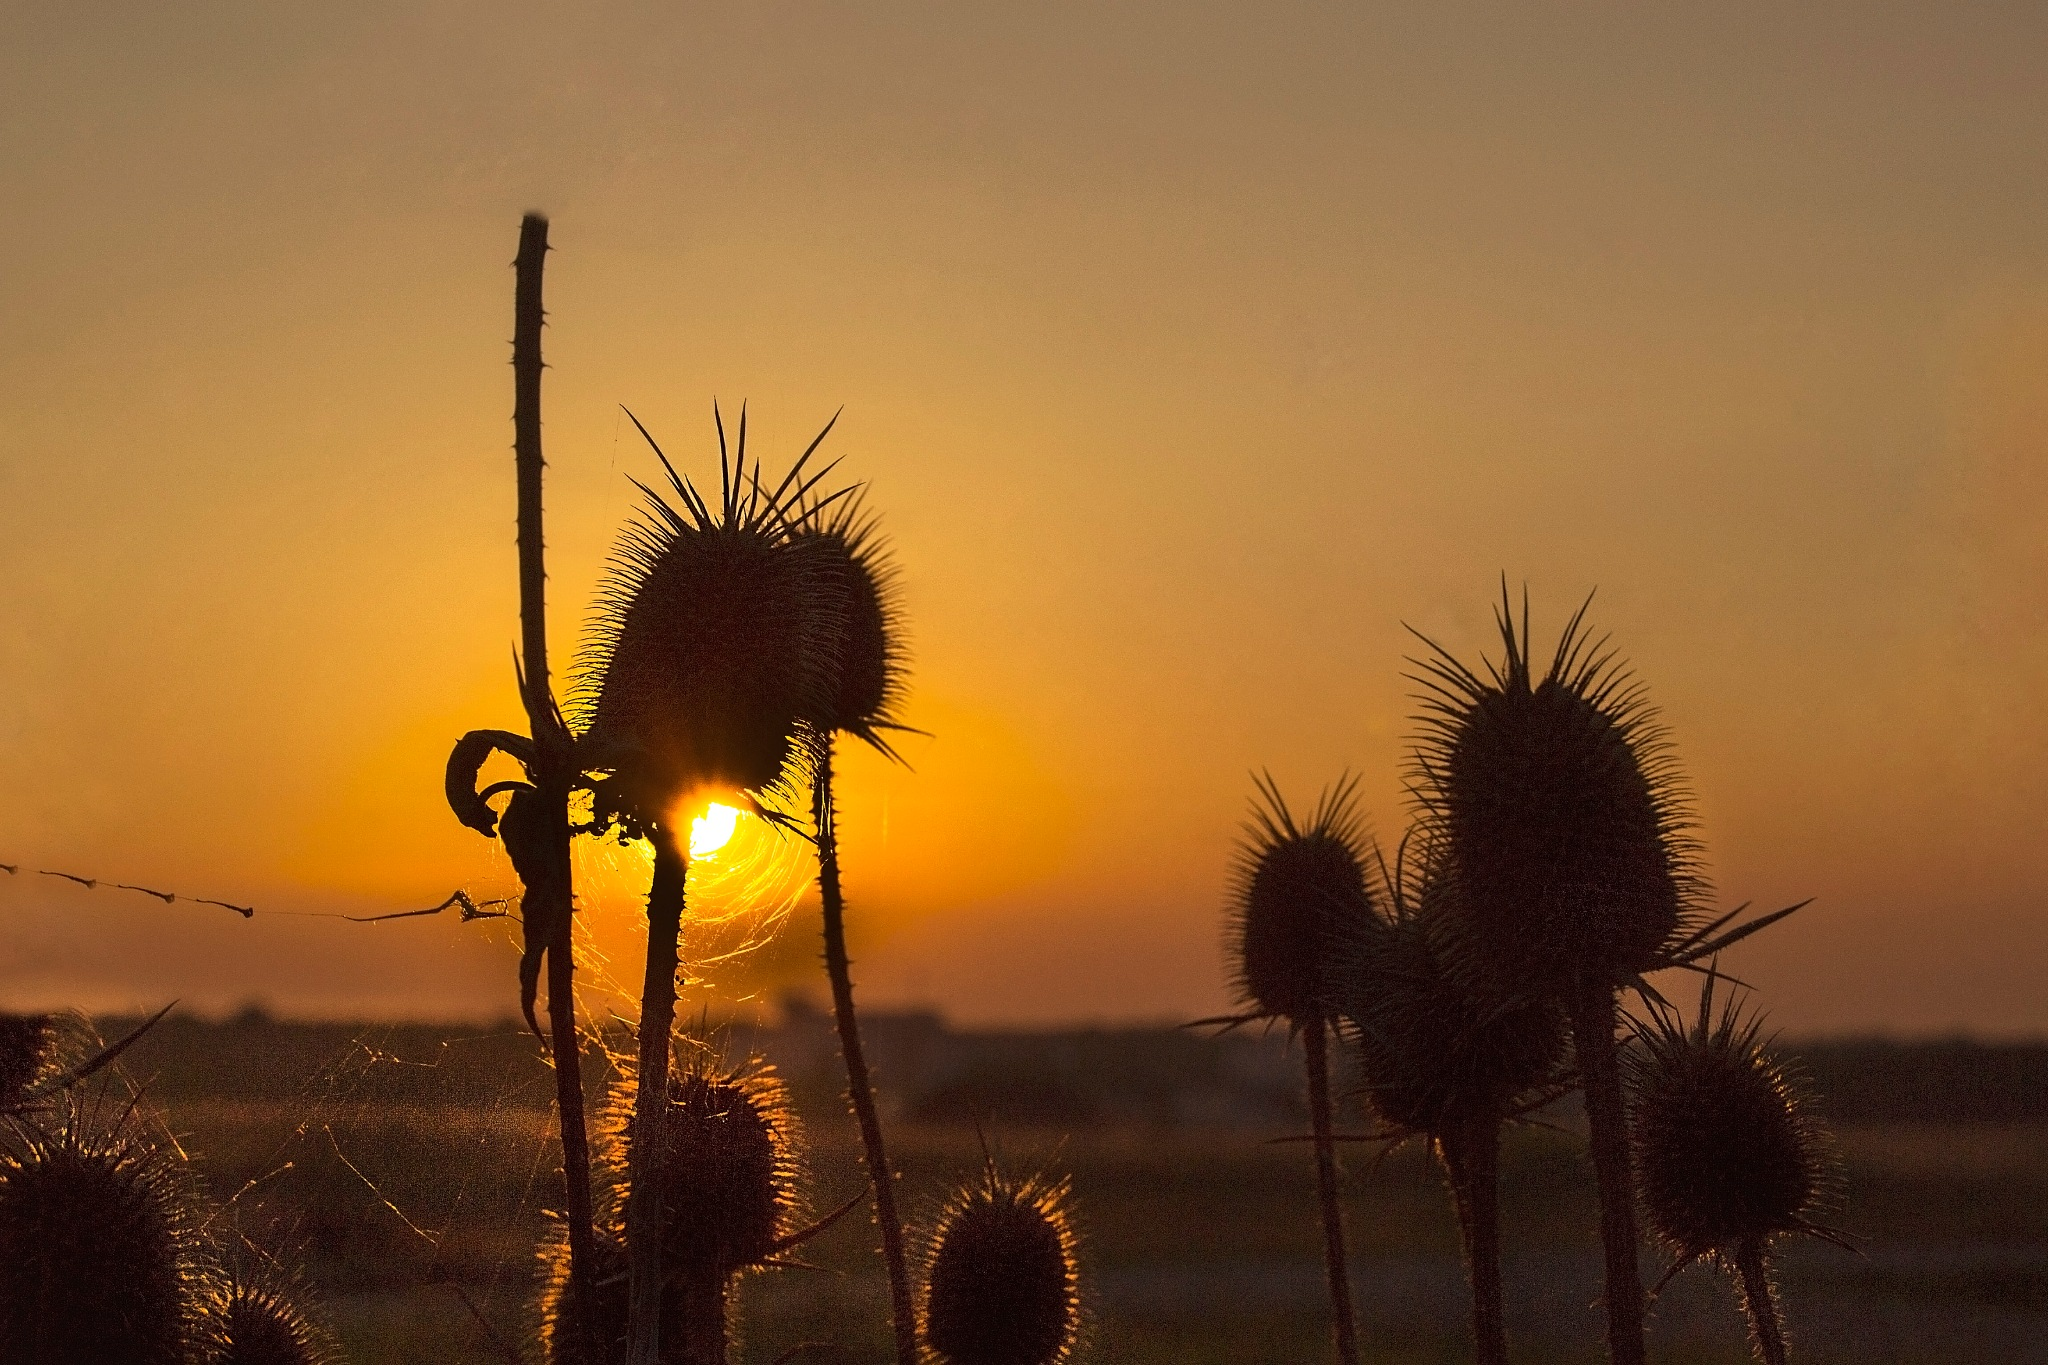 Thistles in the sunset by Neli